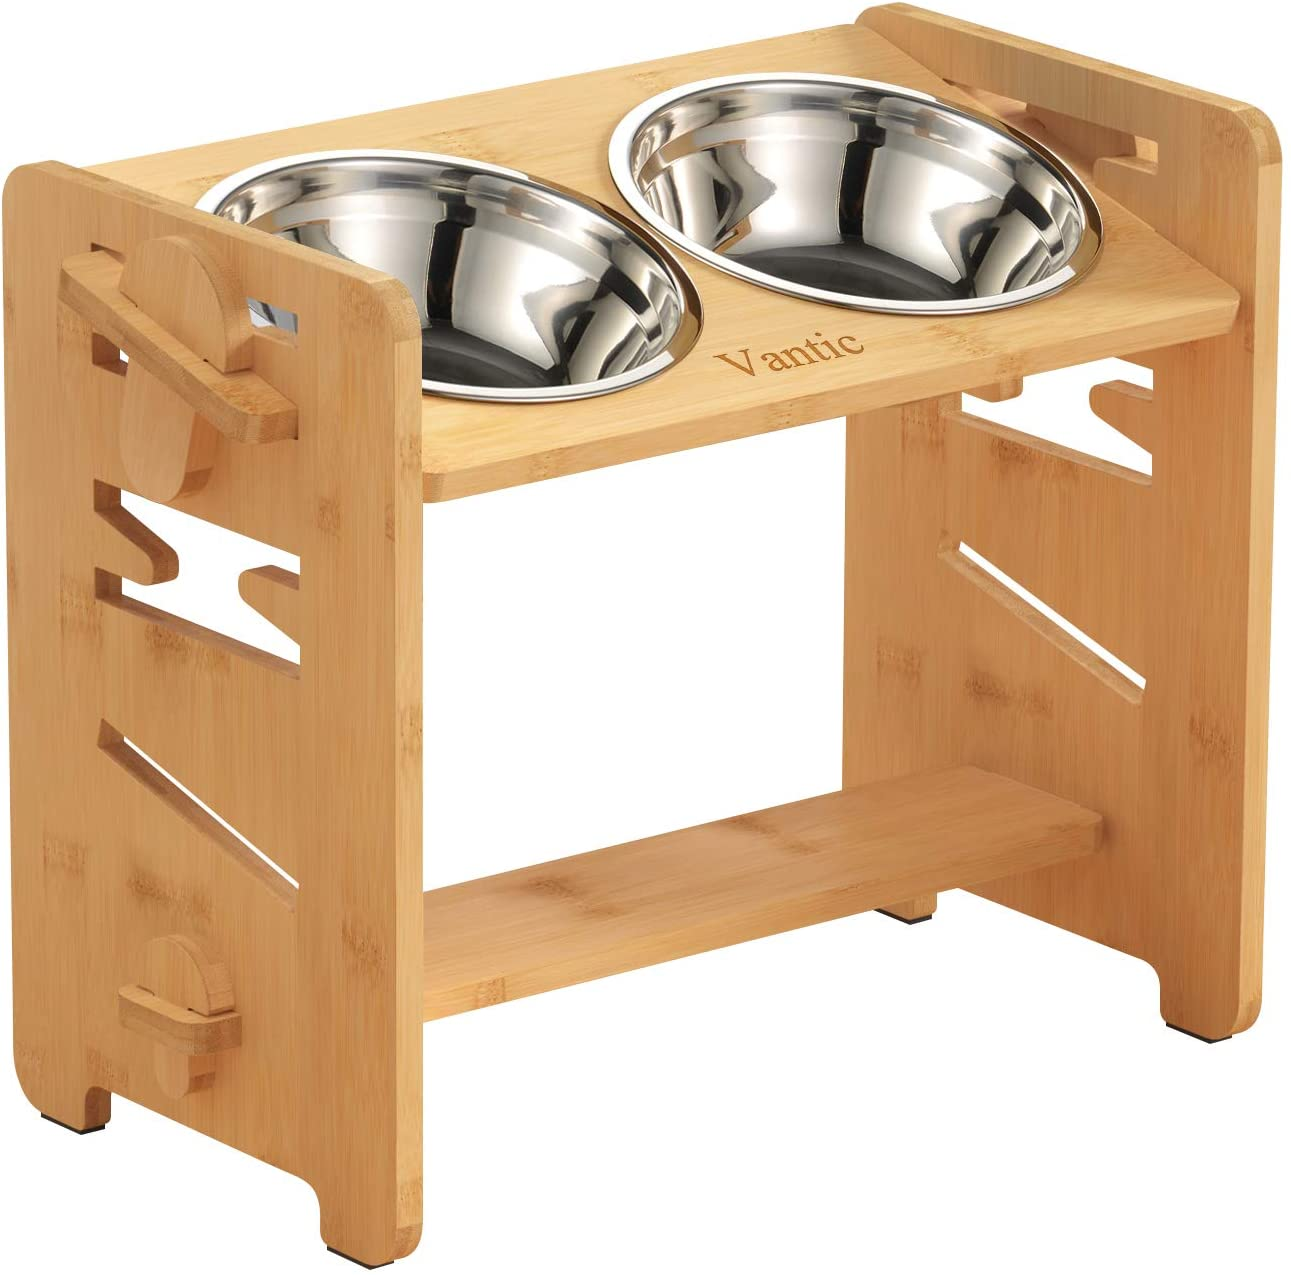 Vantic Elevated Dog Bowls-Adjustable Raised Dog Bowls for Large Dogs Medium Sized Dogs, Durable Bamboo Dog Bowl Stand with 2 Stainless Steel Bowls and Non-Slip Feet